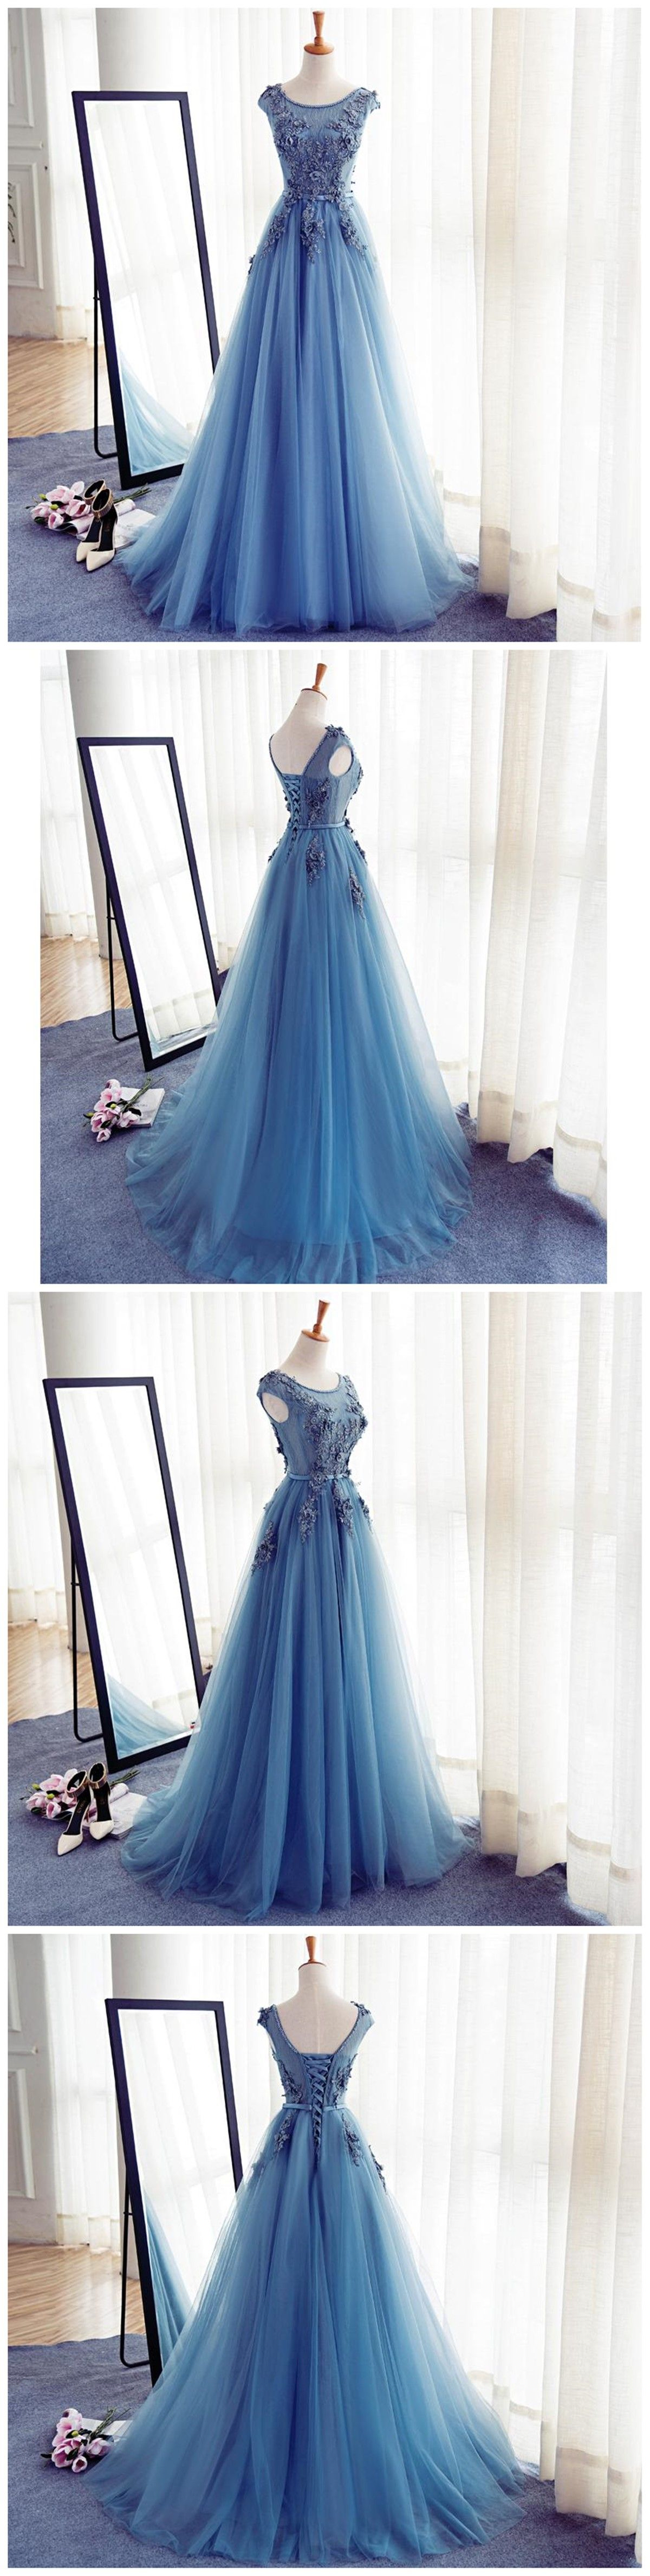 bedd103a0f01f Cap Sleeve Blue Lace Beaded Evening A Line Prom Dresses